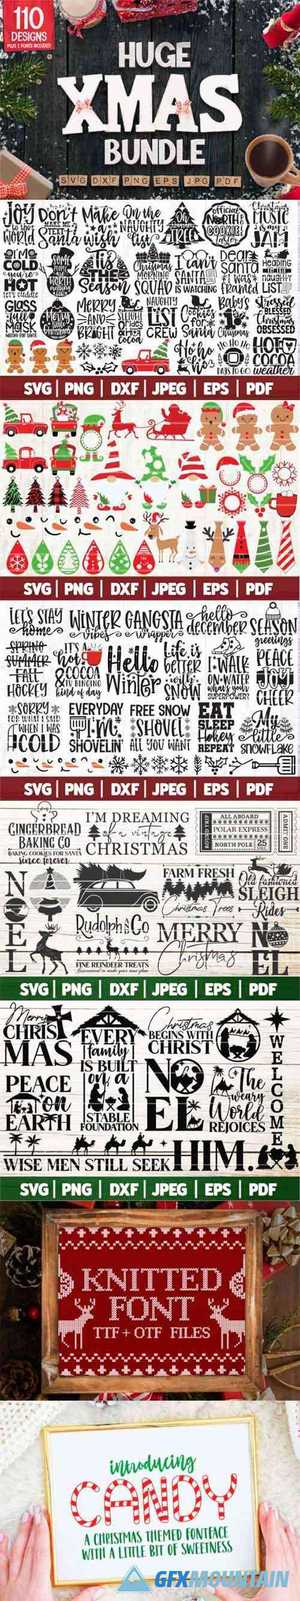 Huge Christmas Bundle SVG 6527941